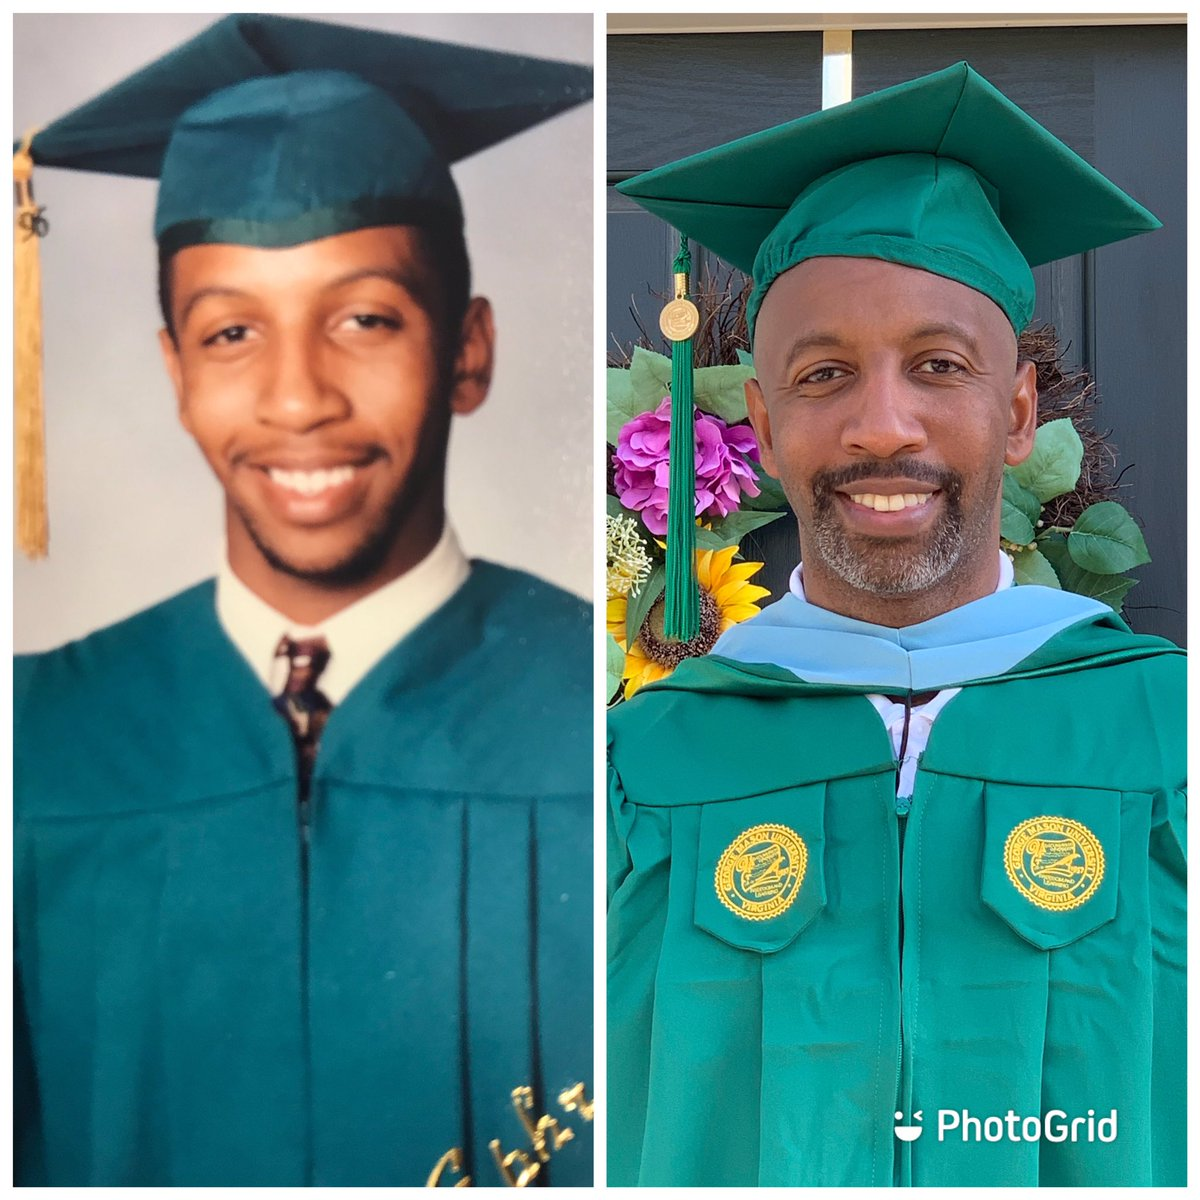 From the Class of 1996 to the Class of 2020!!! #Blessed pic.twitter.com/gDaxcengsP